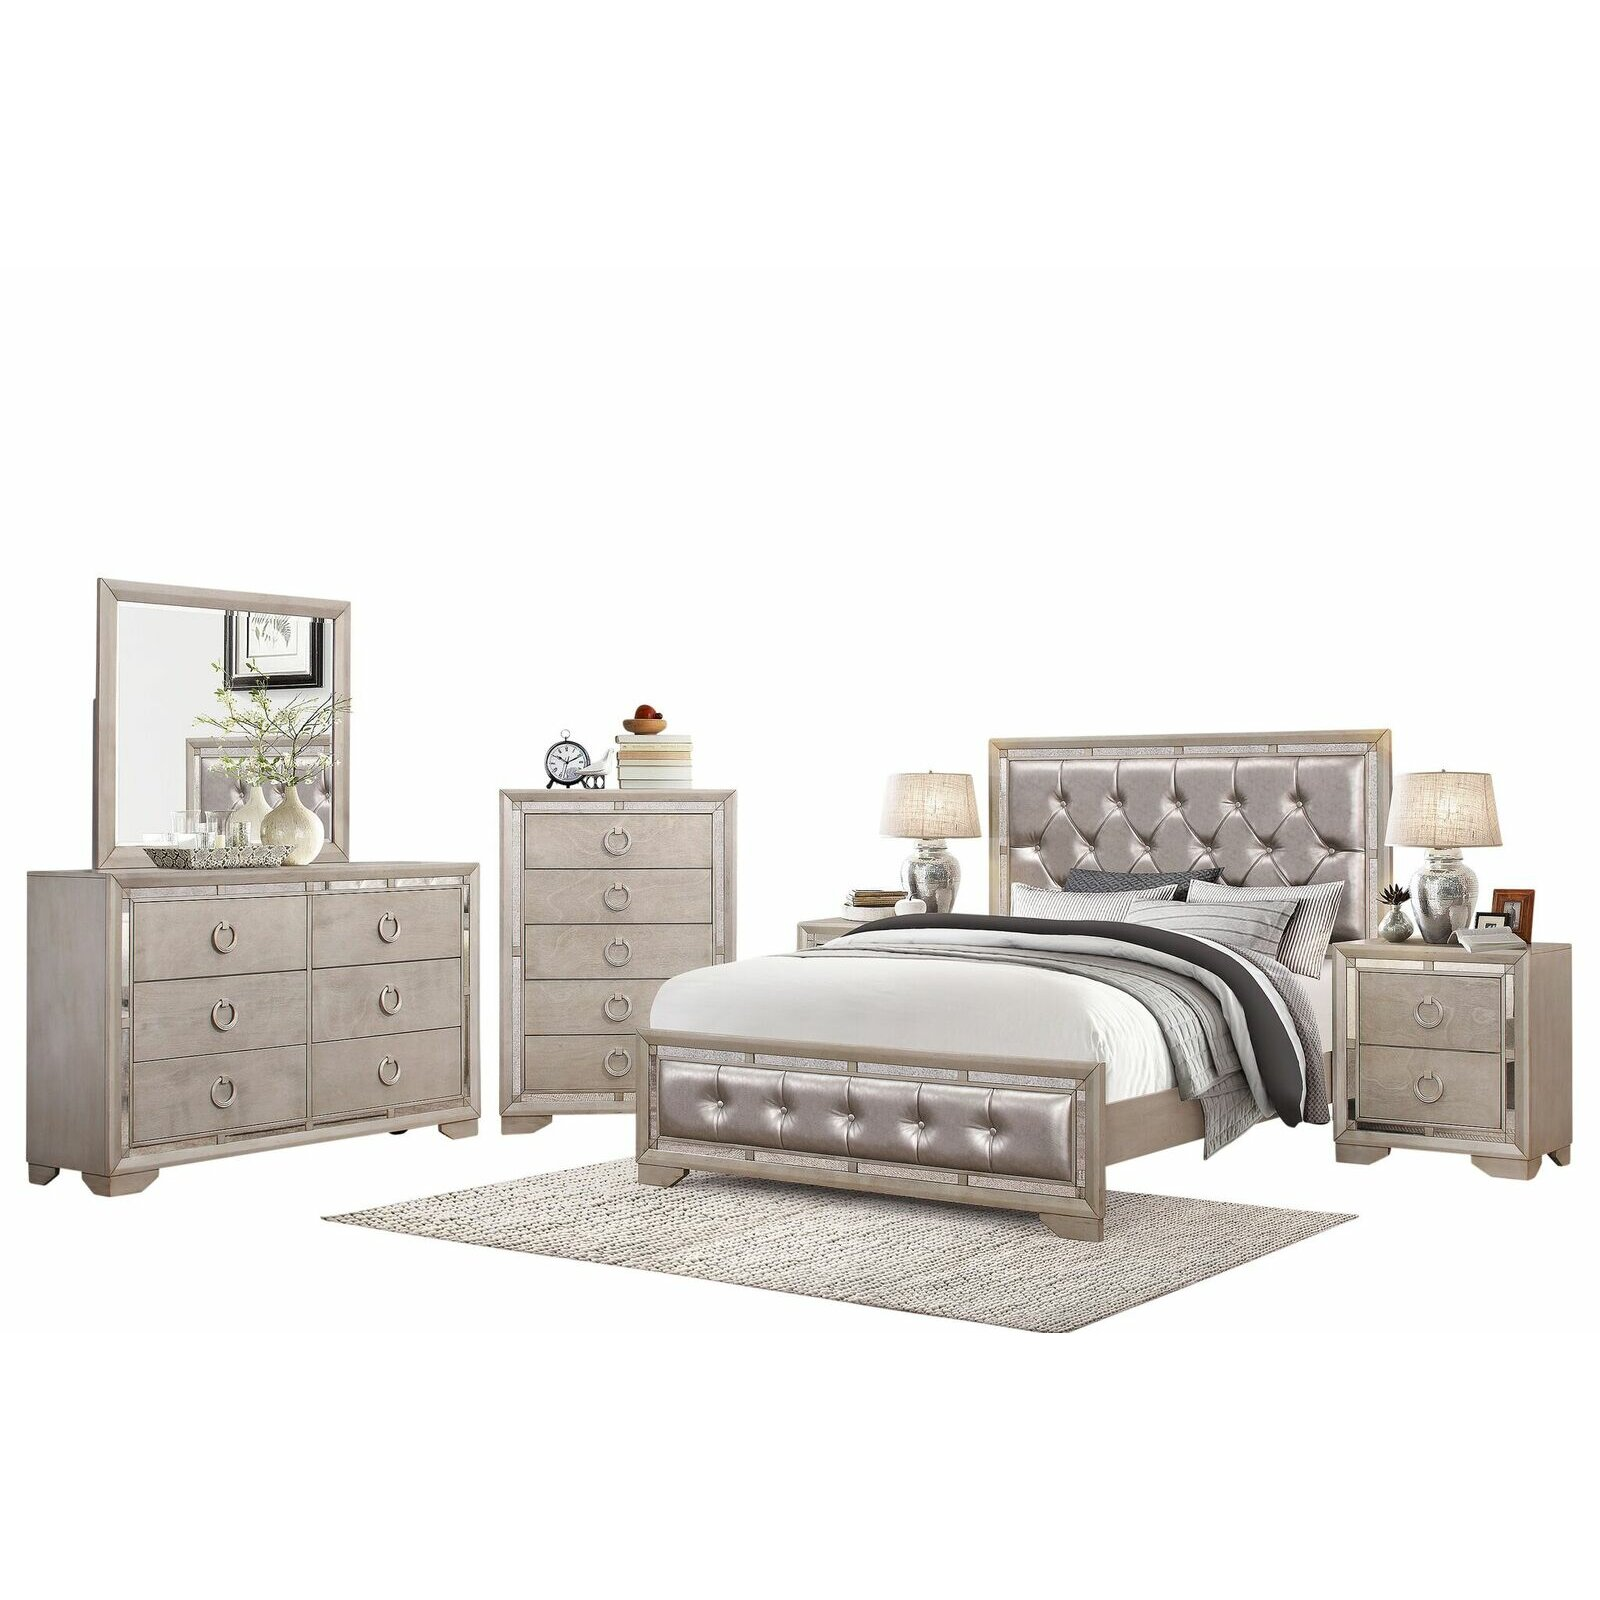 House of hampton june panel 6 piece bedroom set for Bedroom 6 piece set